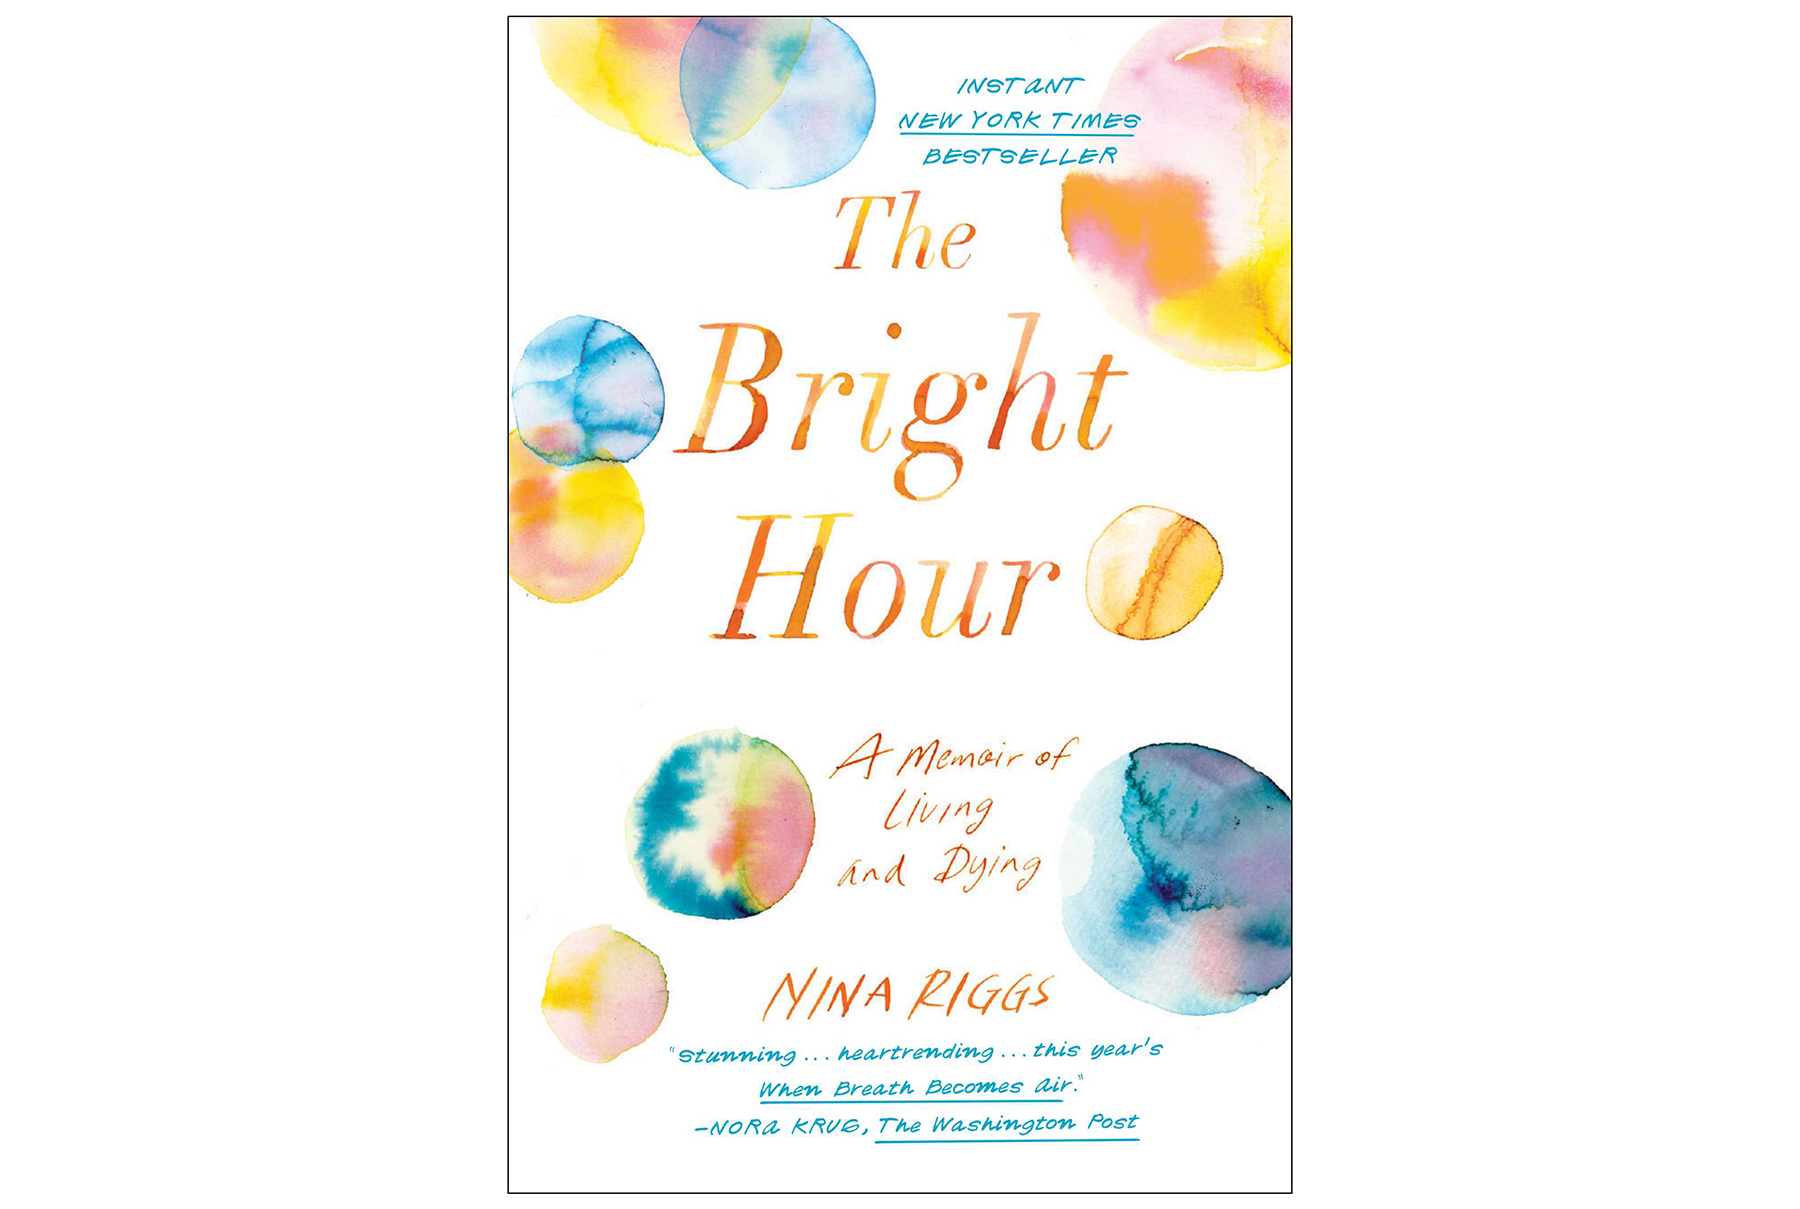 The Bright Hour: A Memoir of Living and Dying, by Nina Riggs